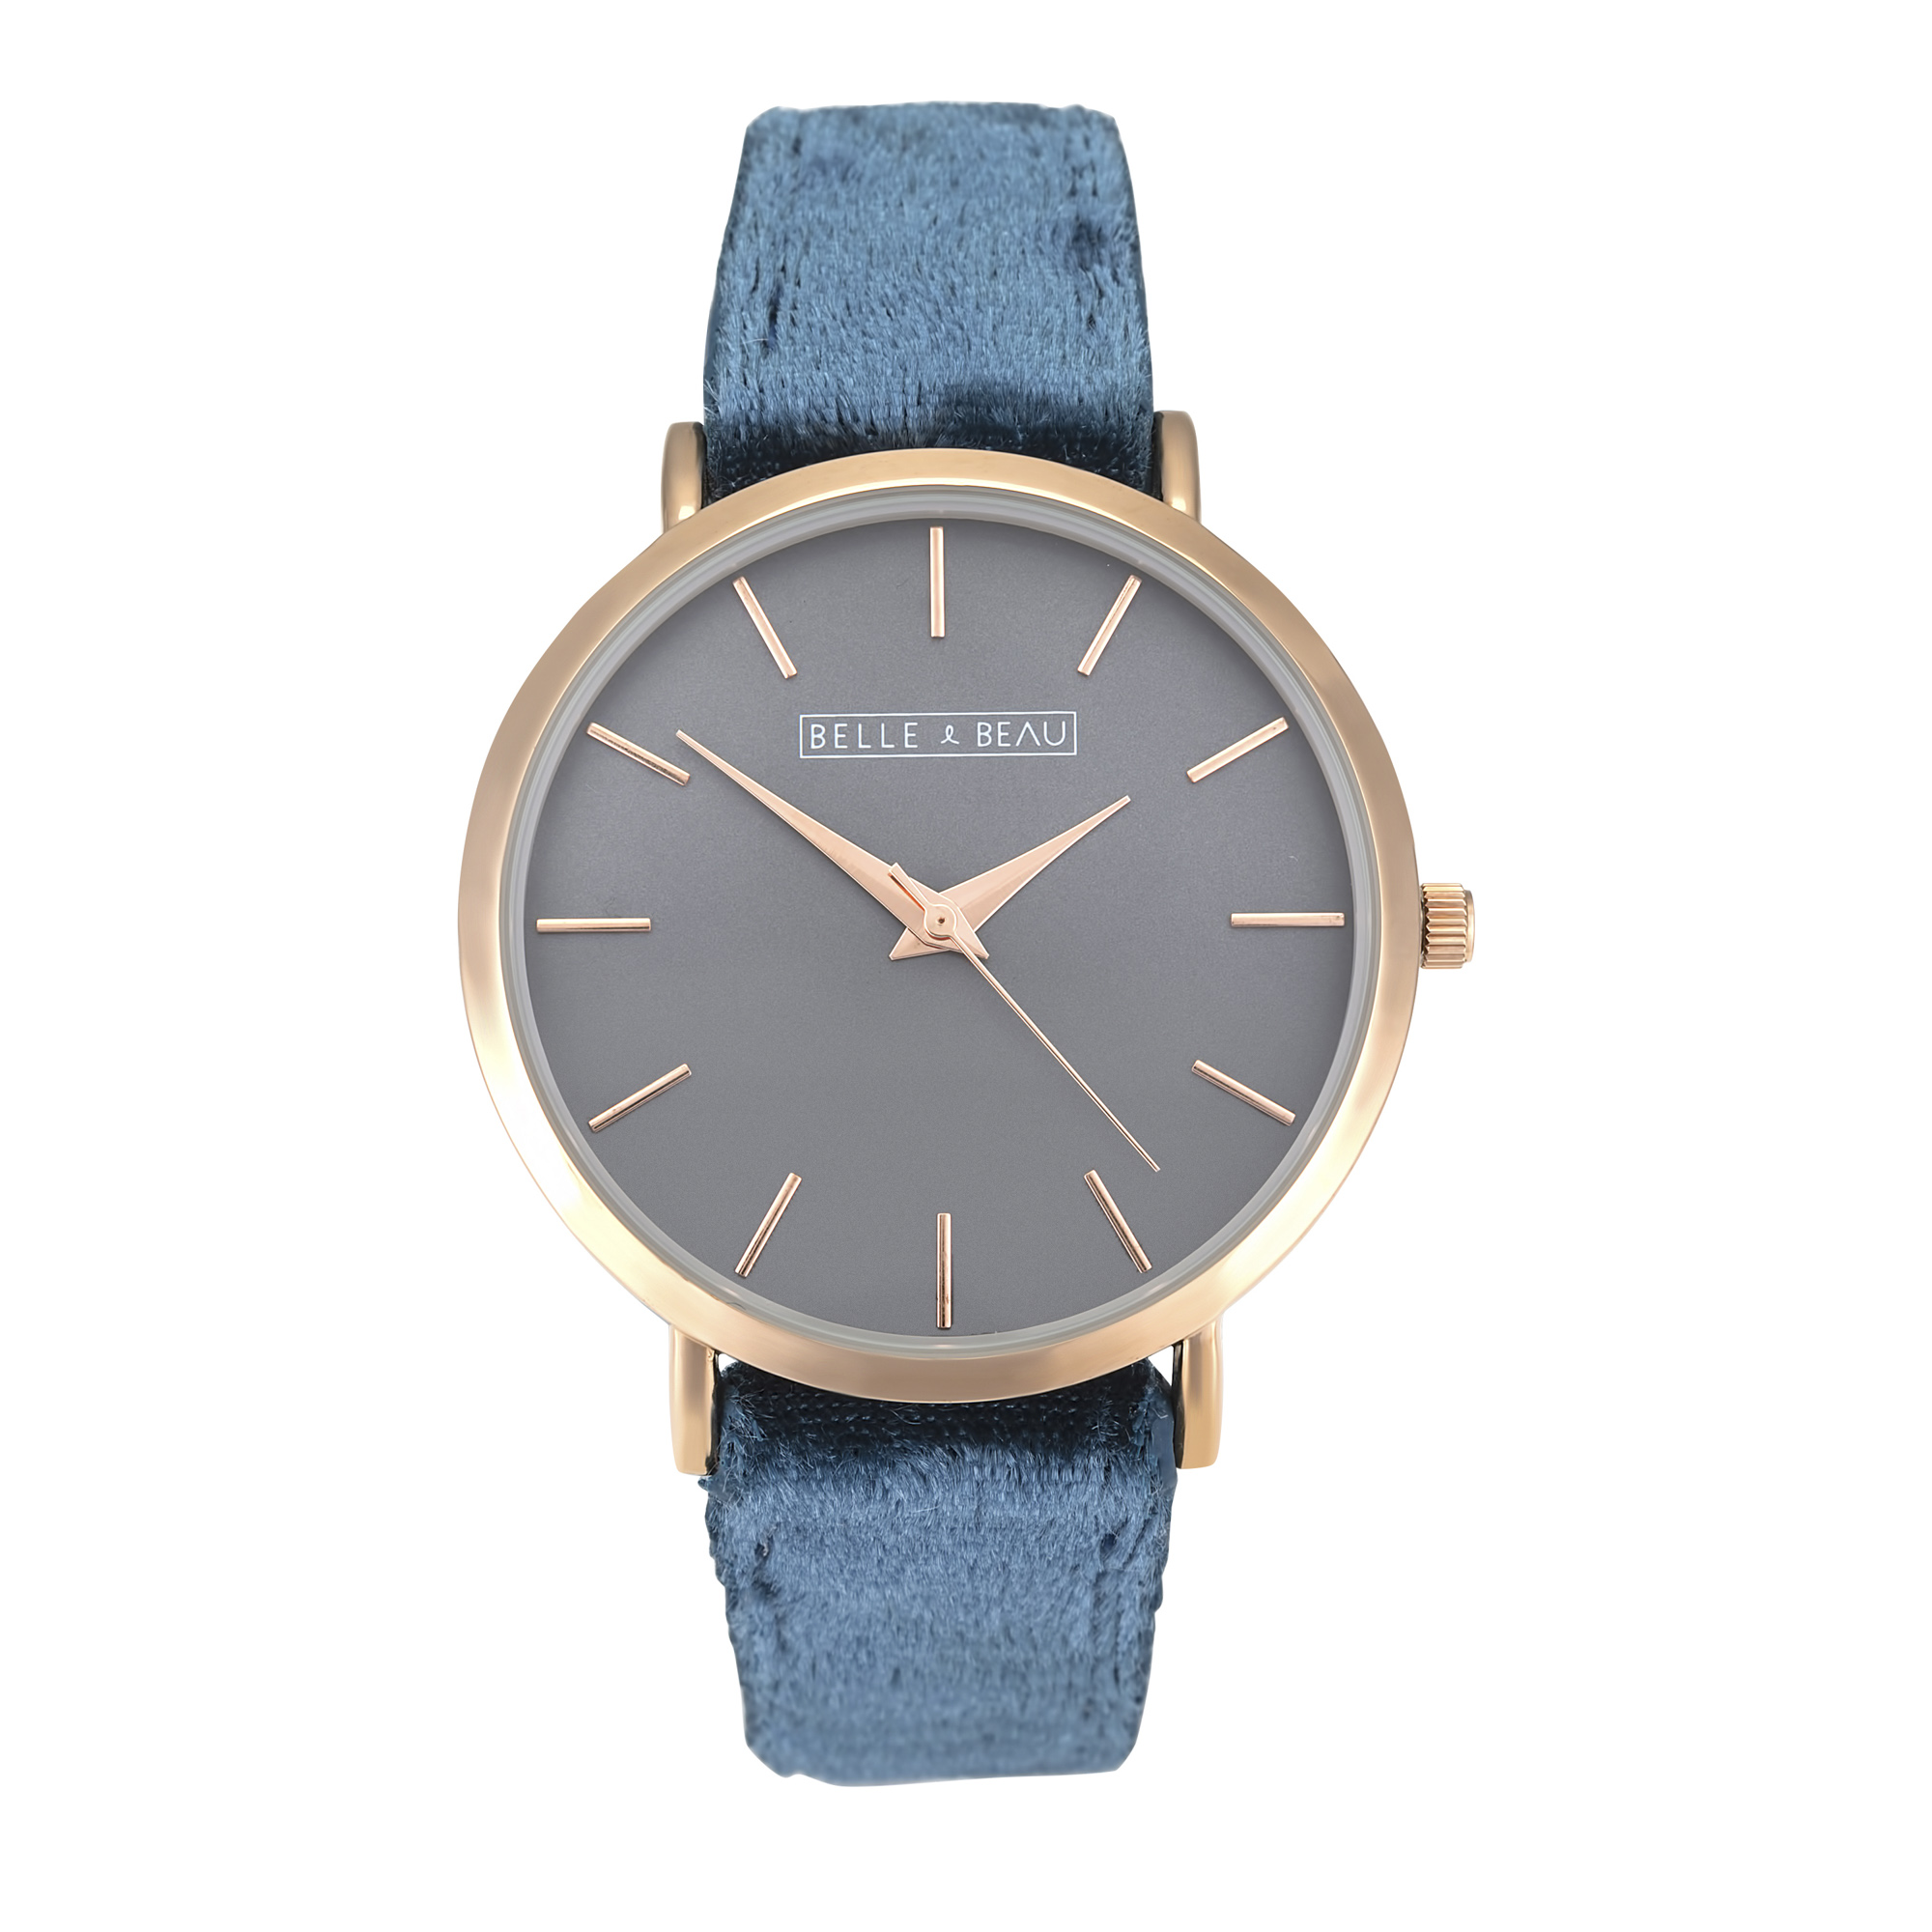 Bb Velvet Crush Sapphire Blue Watch